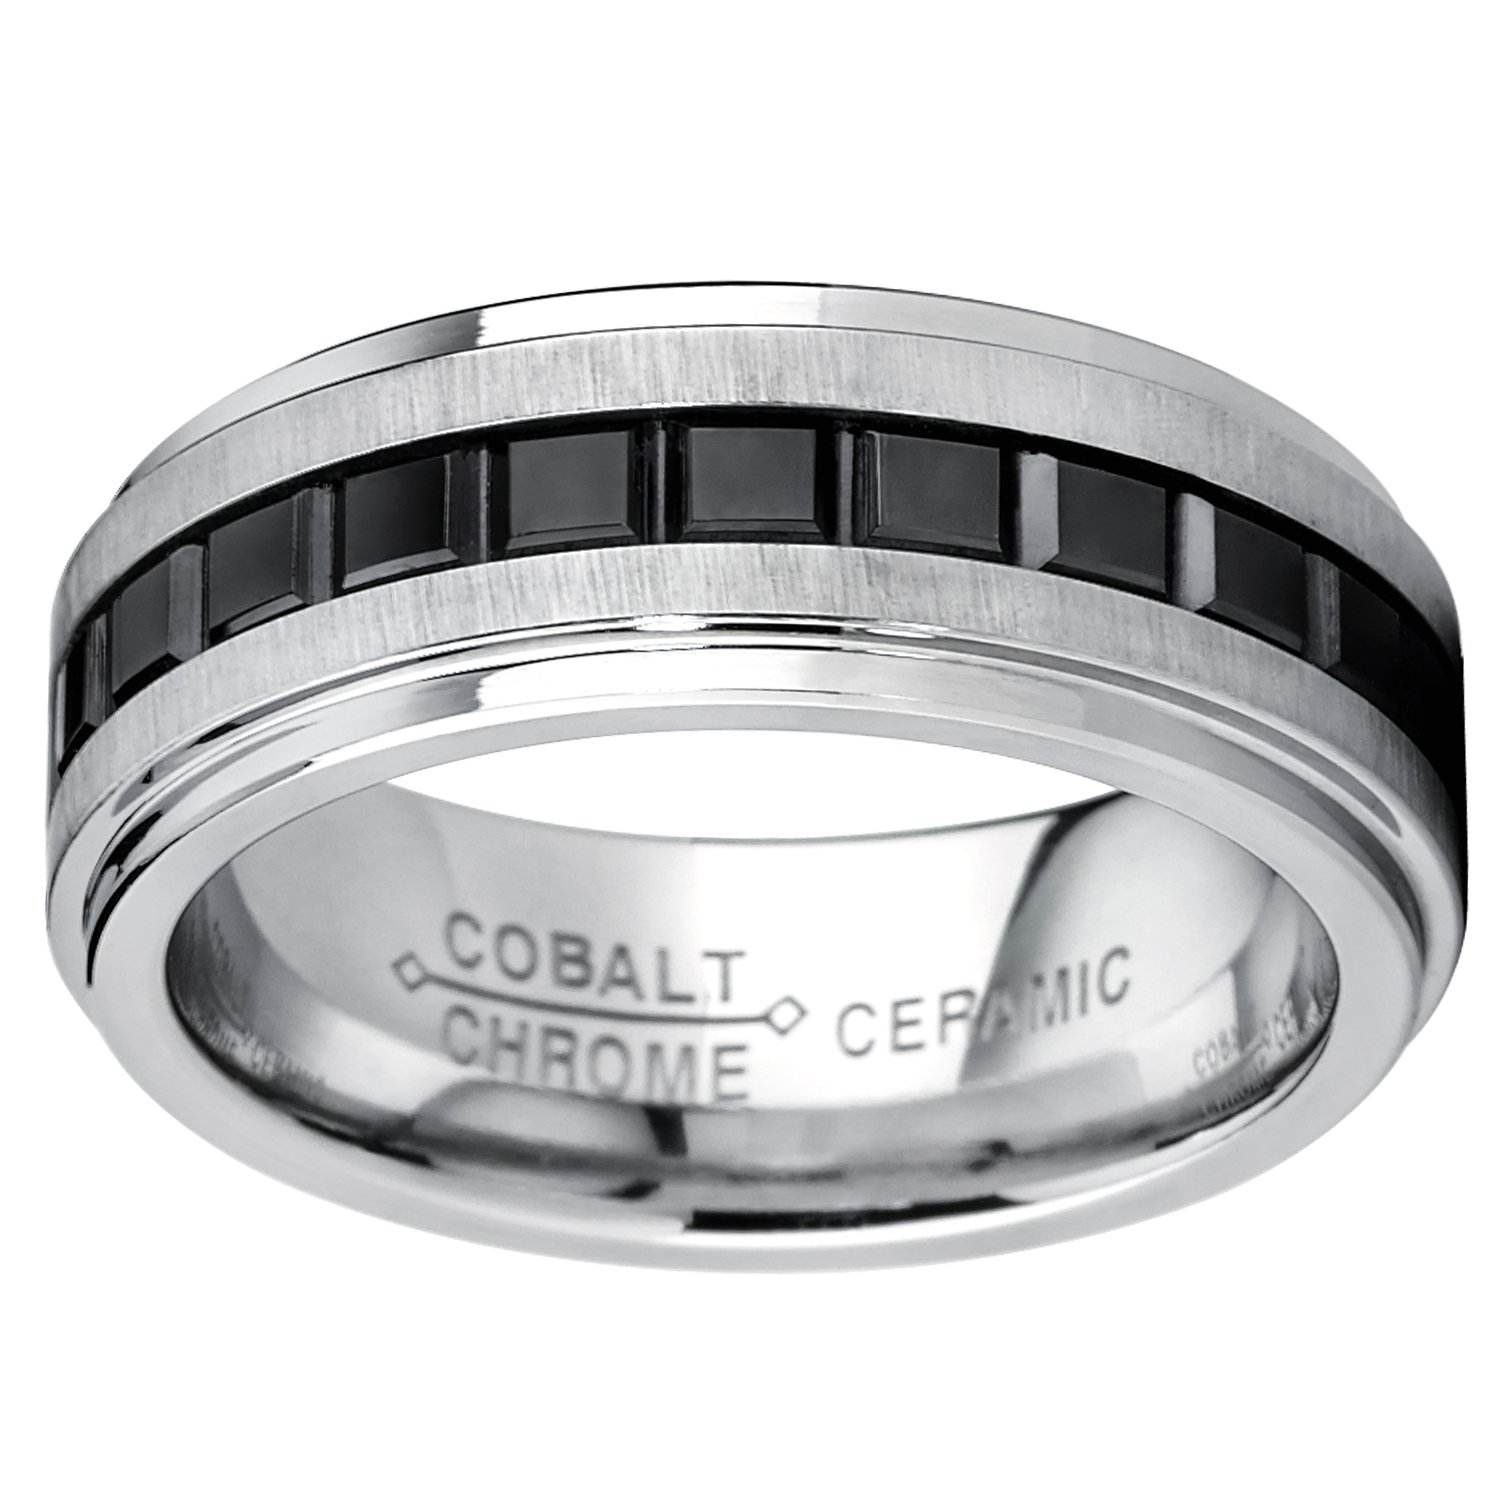 Metal Masters Co Two Tone Brushed Cobalt Wedding Band Ring with Princess Cut Design Black Ceramic 8mm Comfort Fit